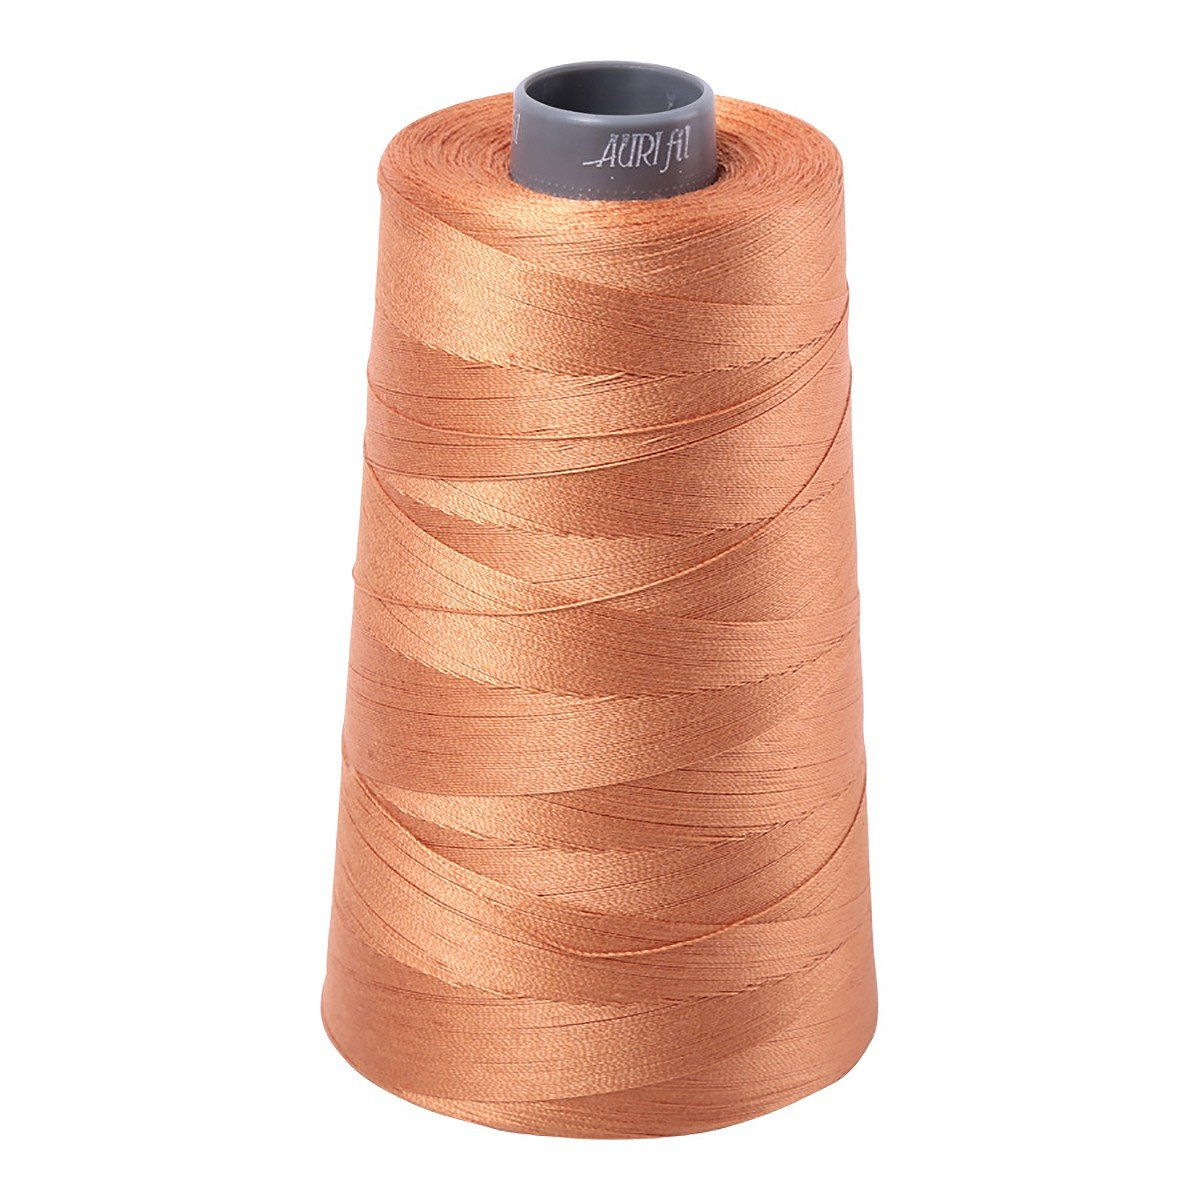 Mako (Cotton) Embroidery Thread 28wt 3609yds Caramel